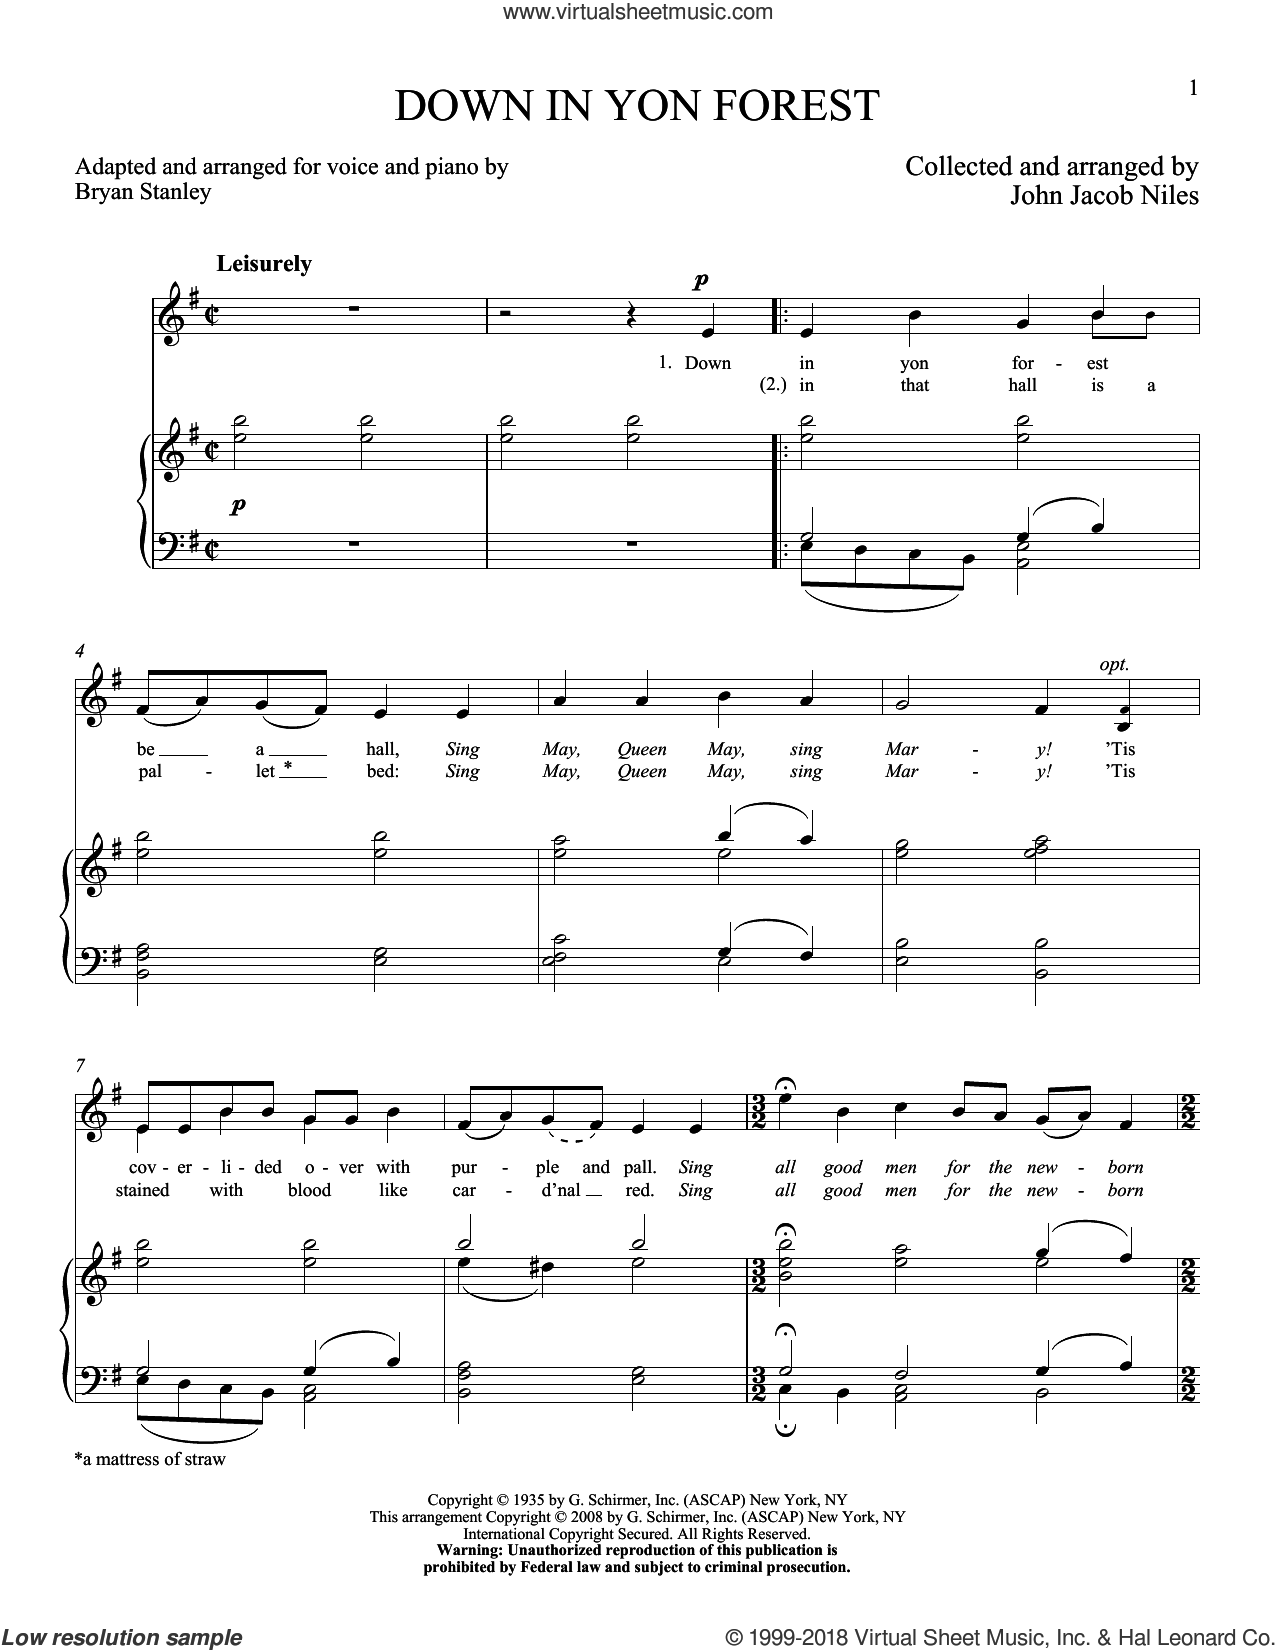 Down In Yon Forest sheet music for voice and piano (High ) by John Jacob Niles, classical score, intermediate voice. Score Image Preview.